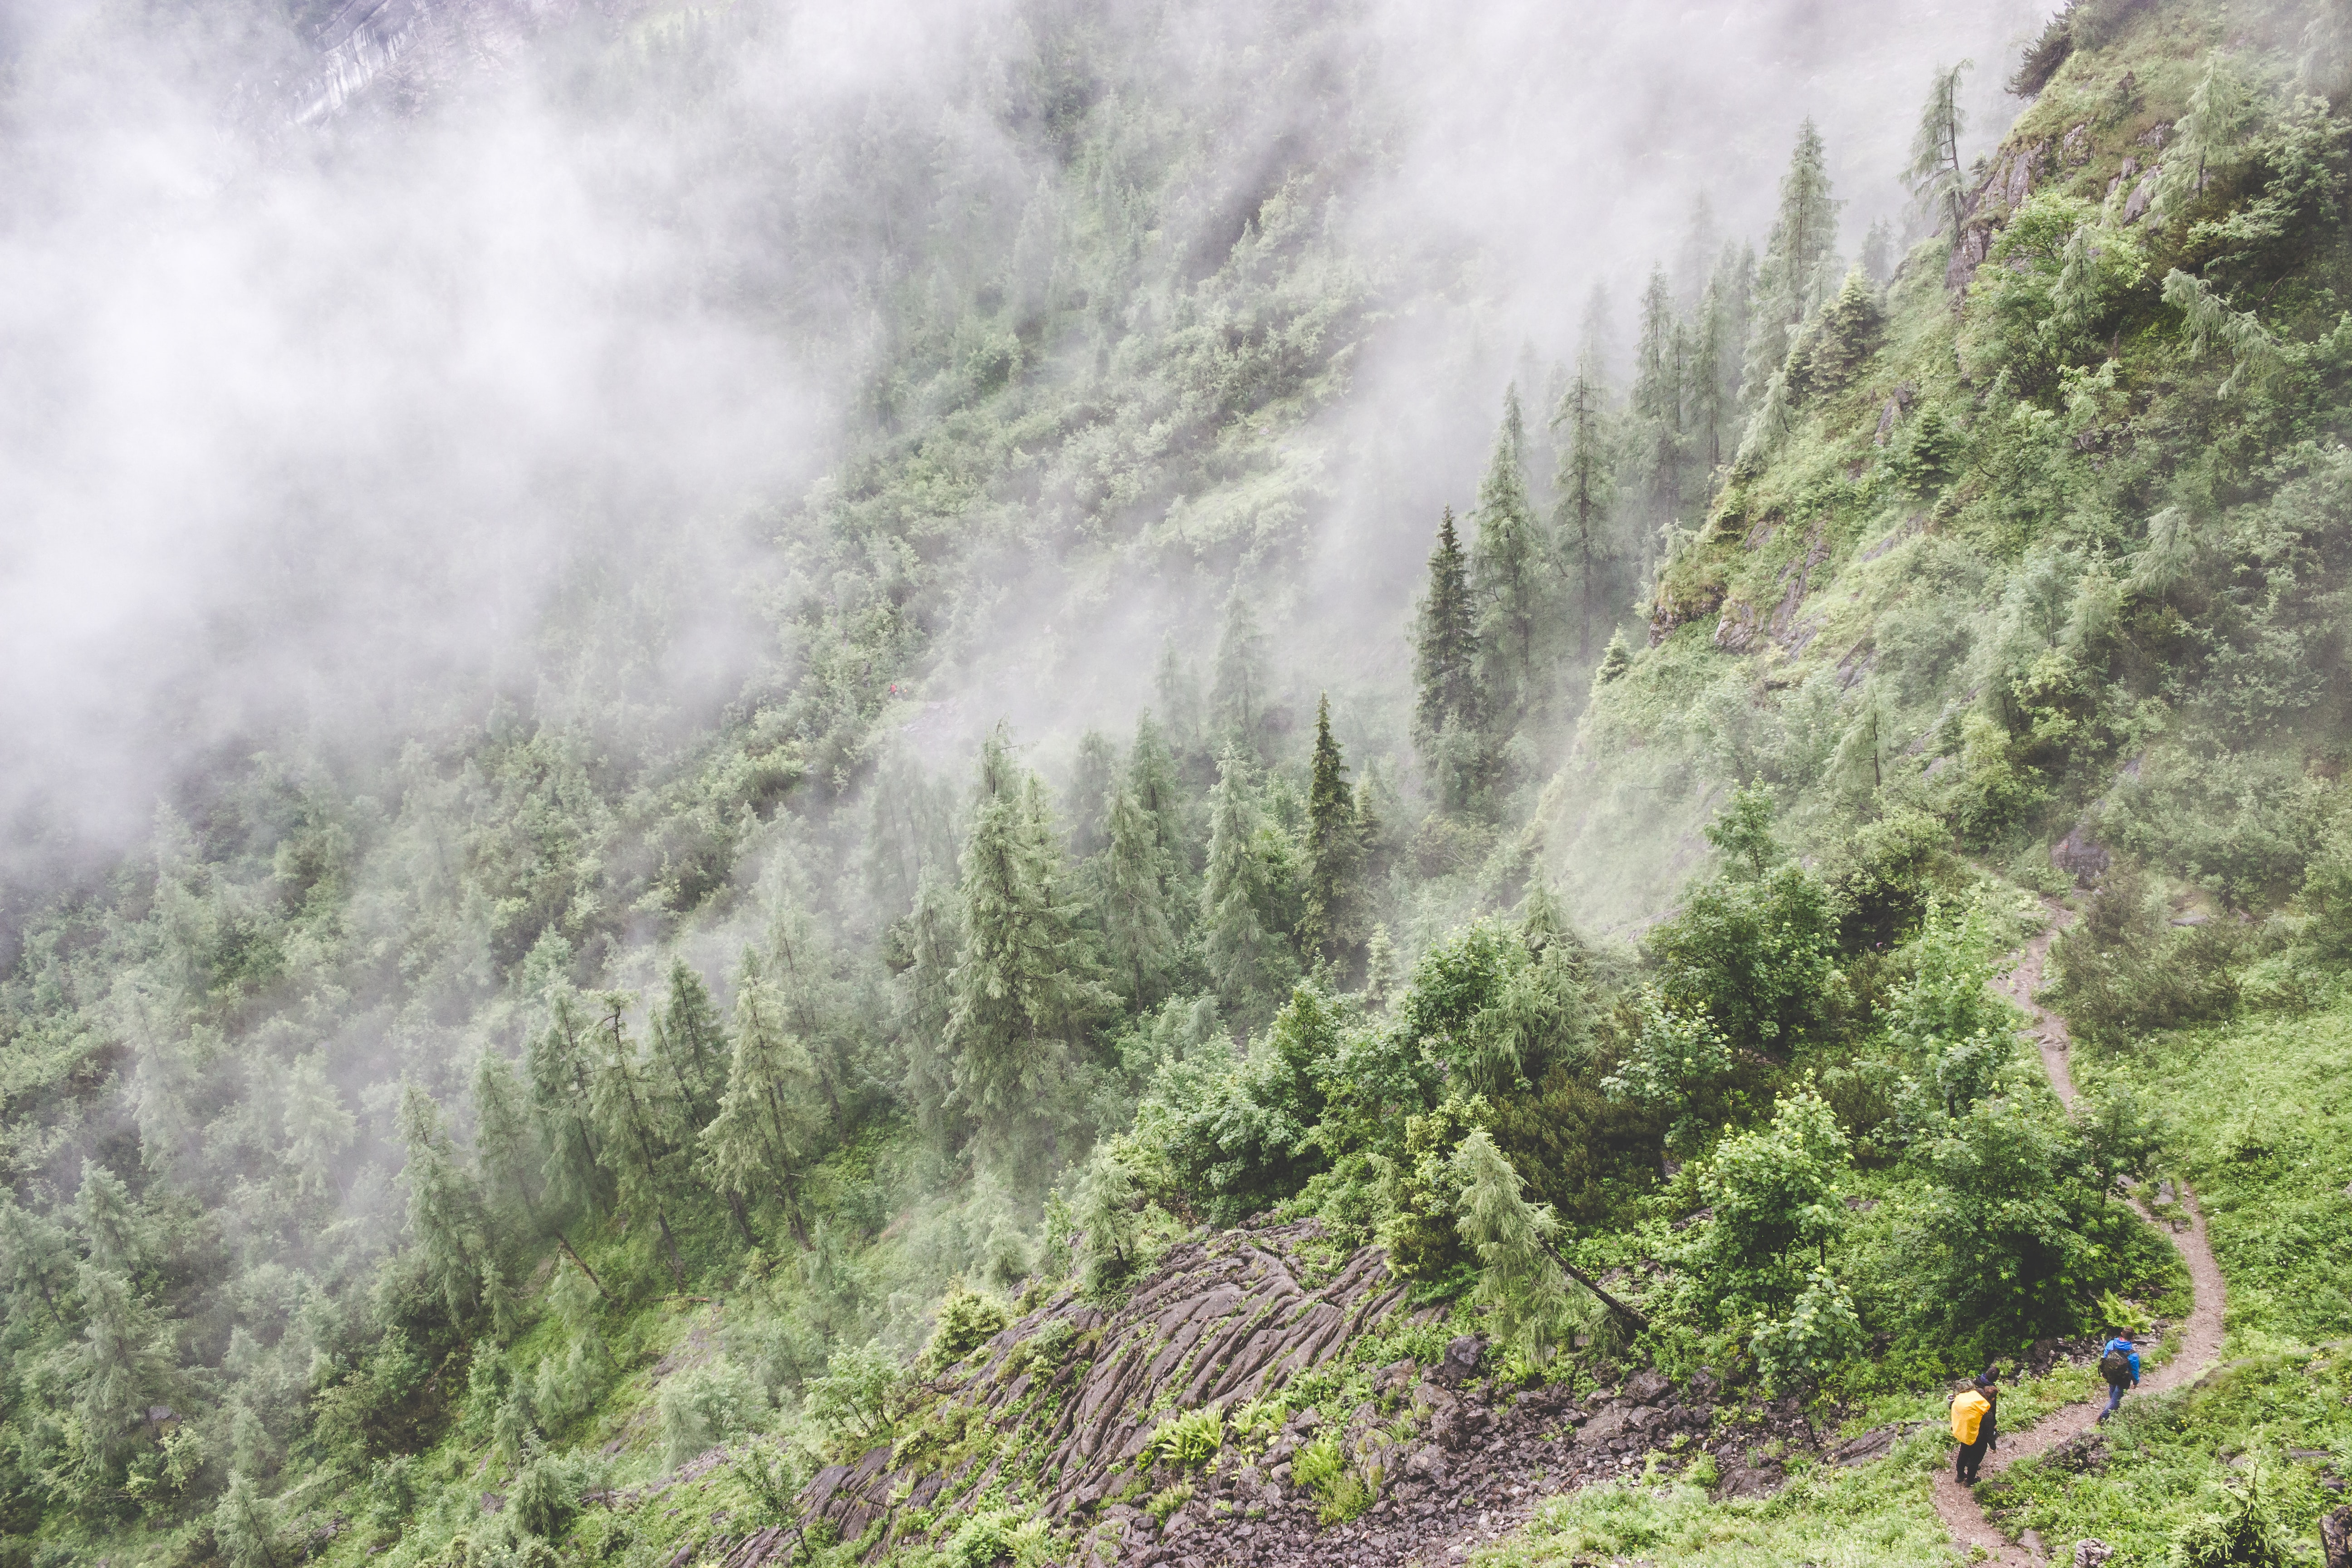 Hikers walking along a narrow path on a wooded slope enveloped in fog